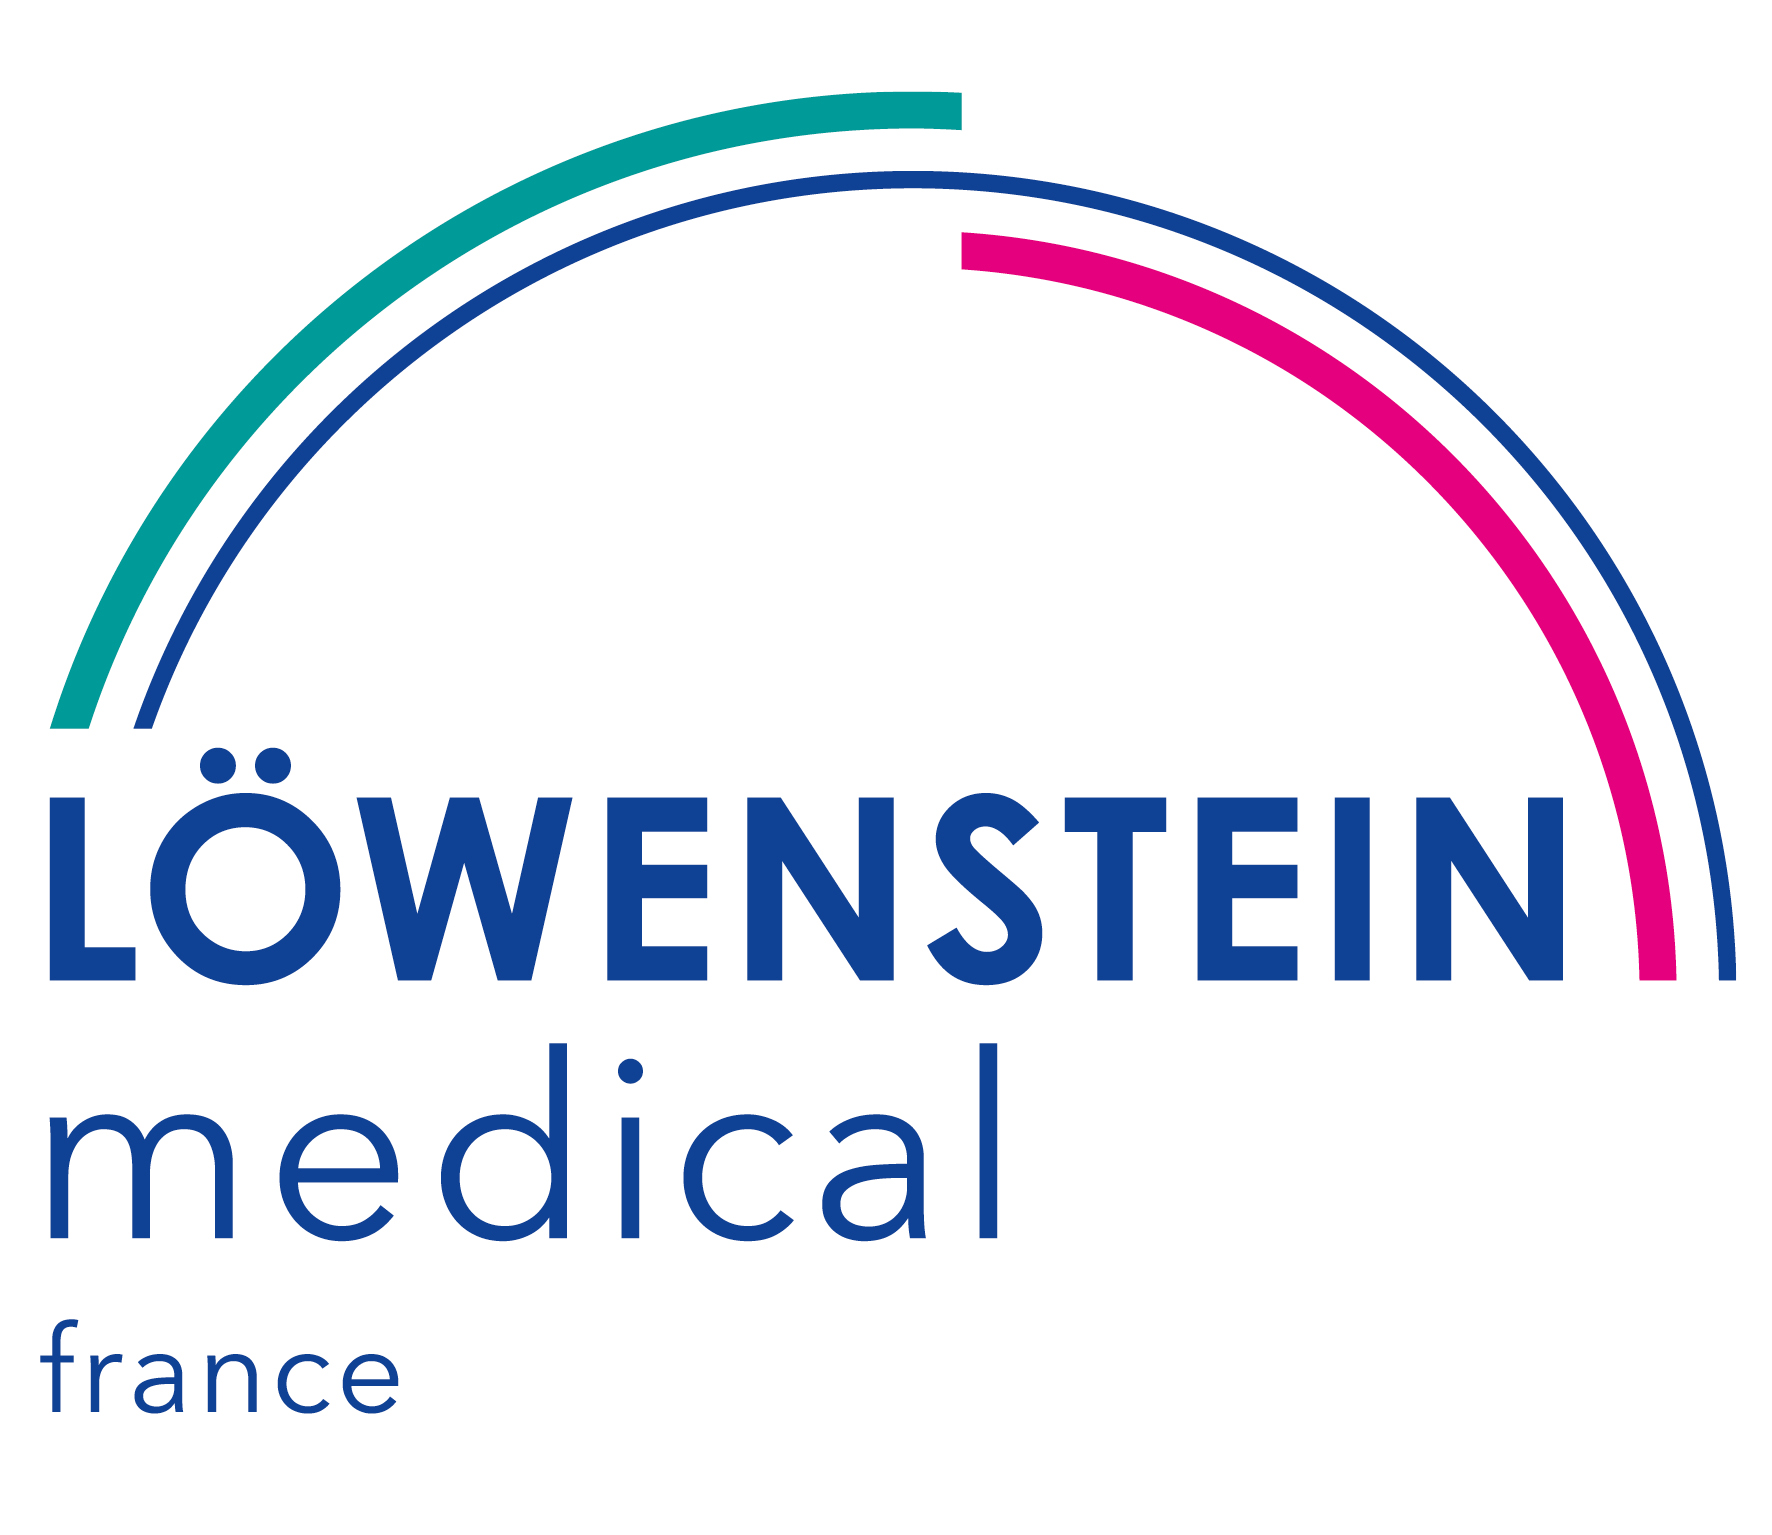 LÖWENSTEIN MEDICAL